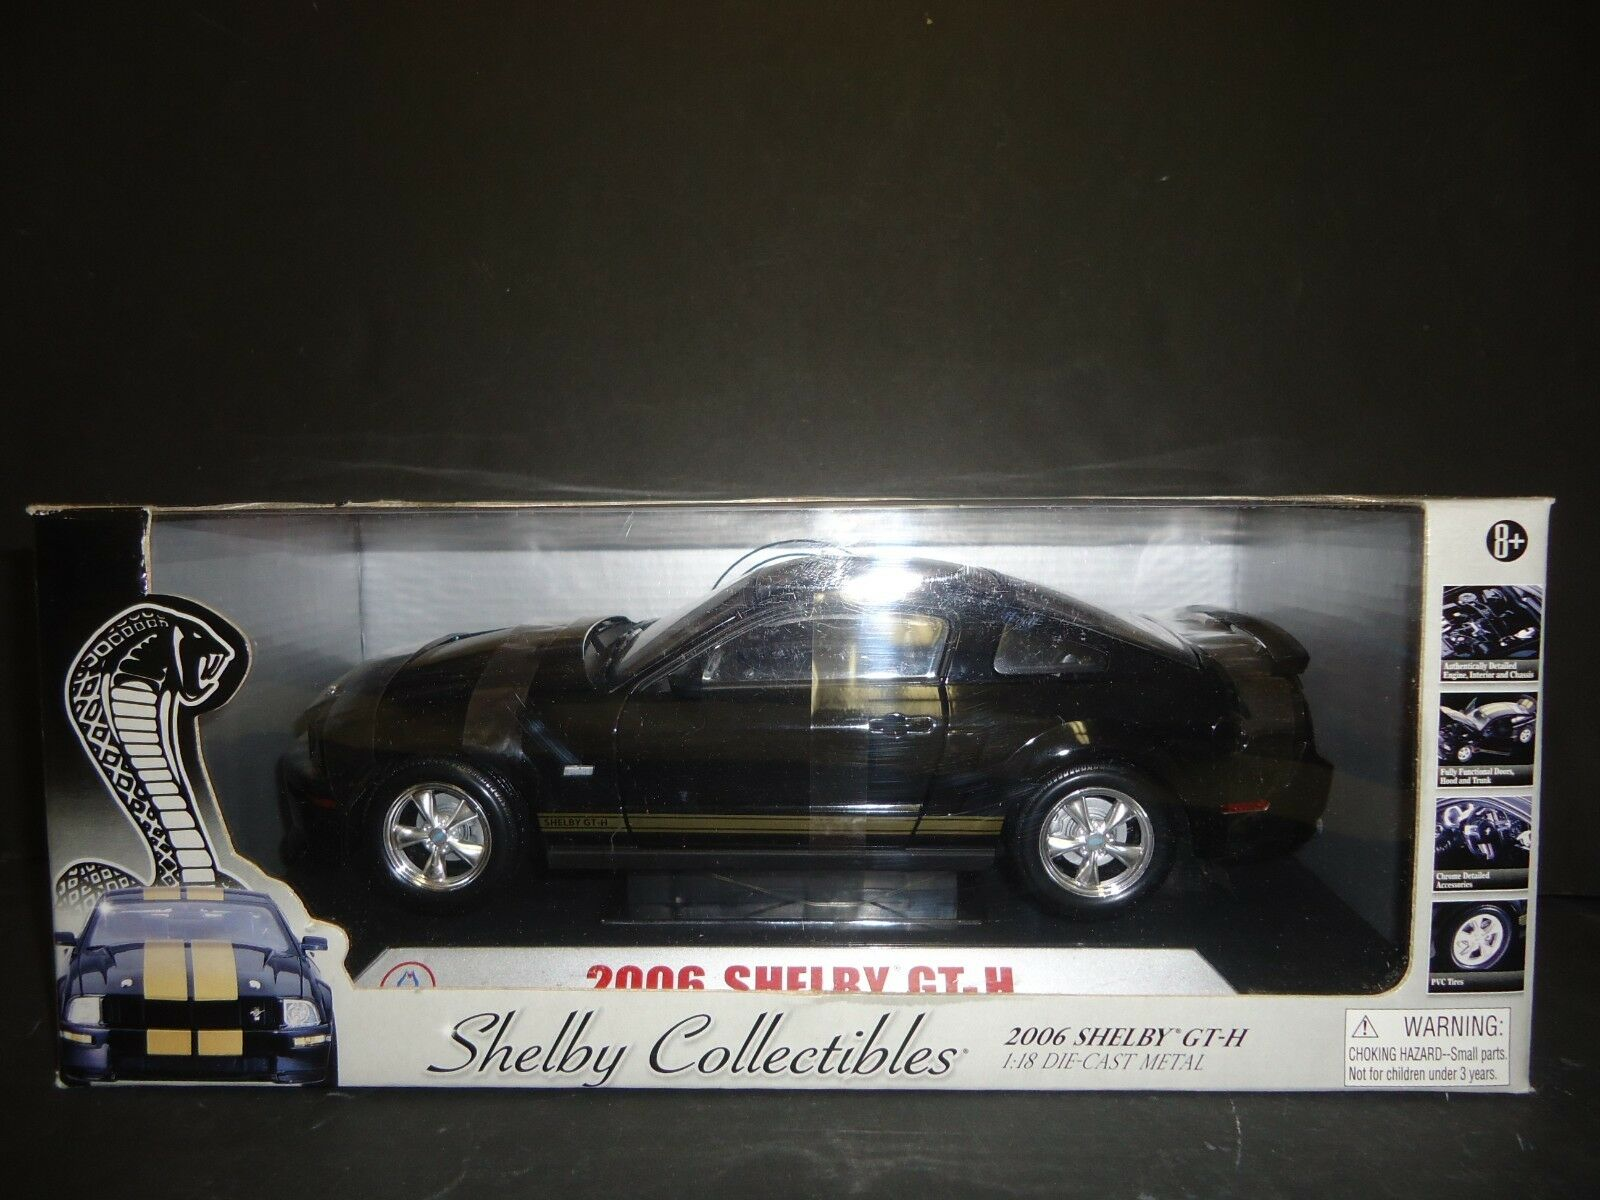 Shelby Collectibles shelby GT-H 2006 1 18 RARE